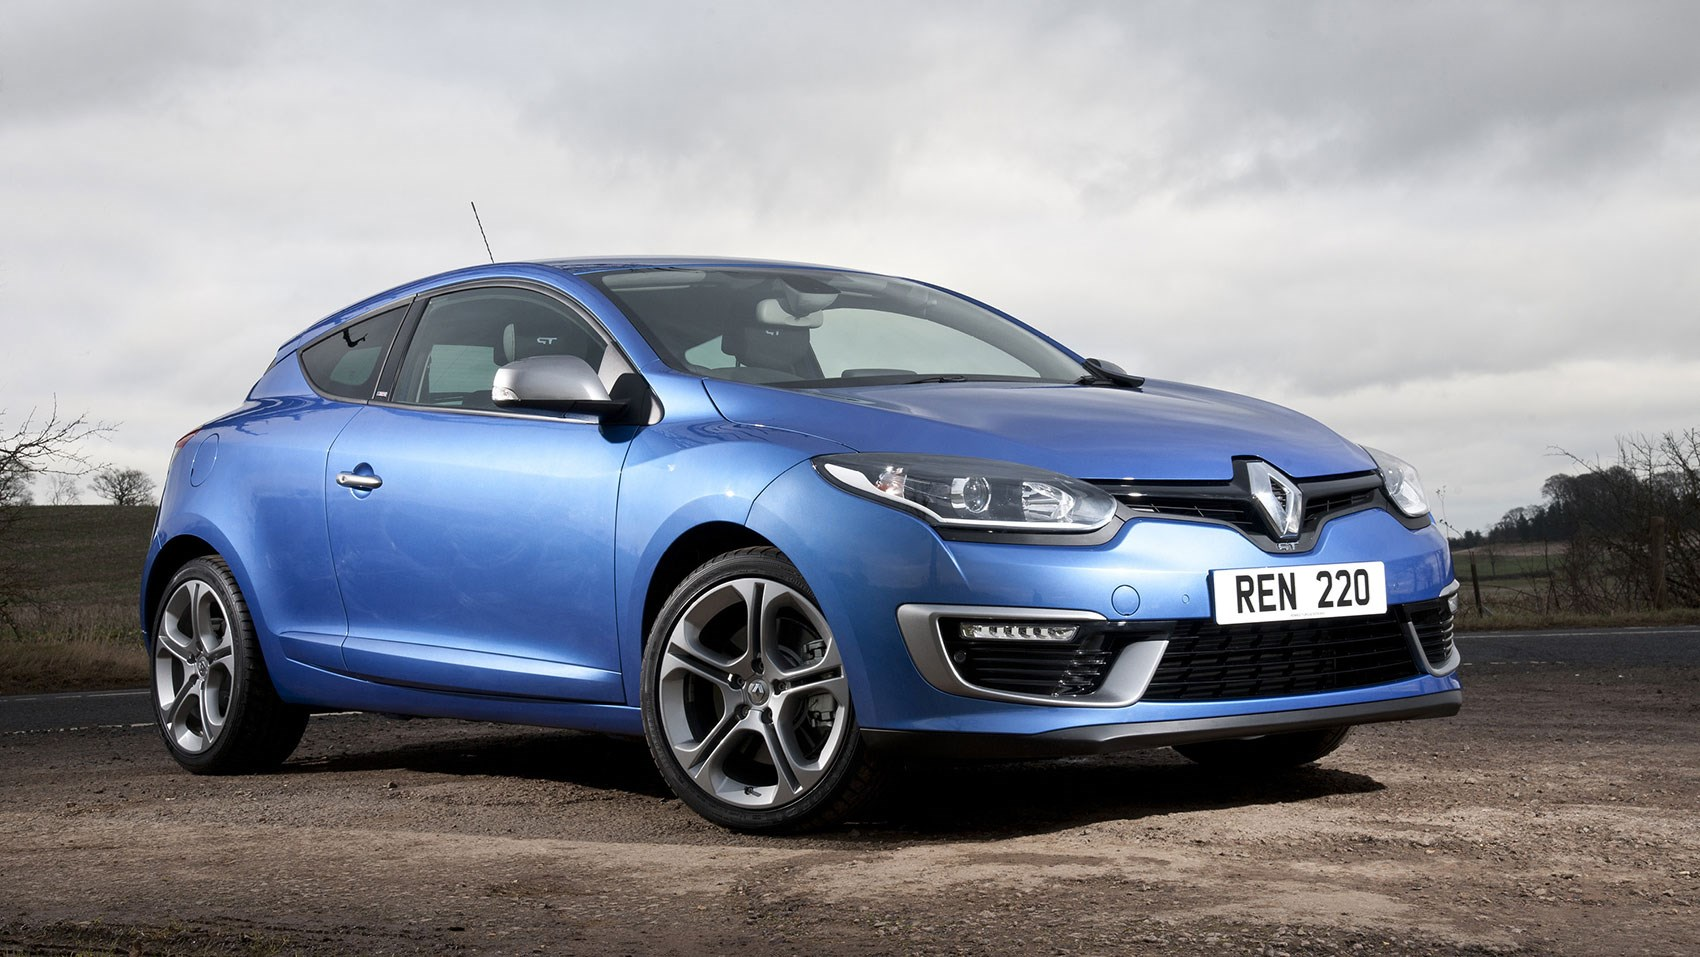 renault megane renaultsport gt 220 coupe 2015 review by car magazine. Black Bedroom Furniture Sets. Home Design Ideas